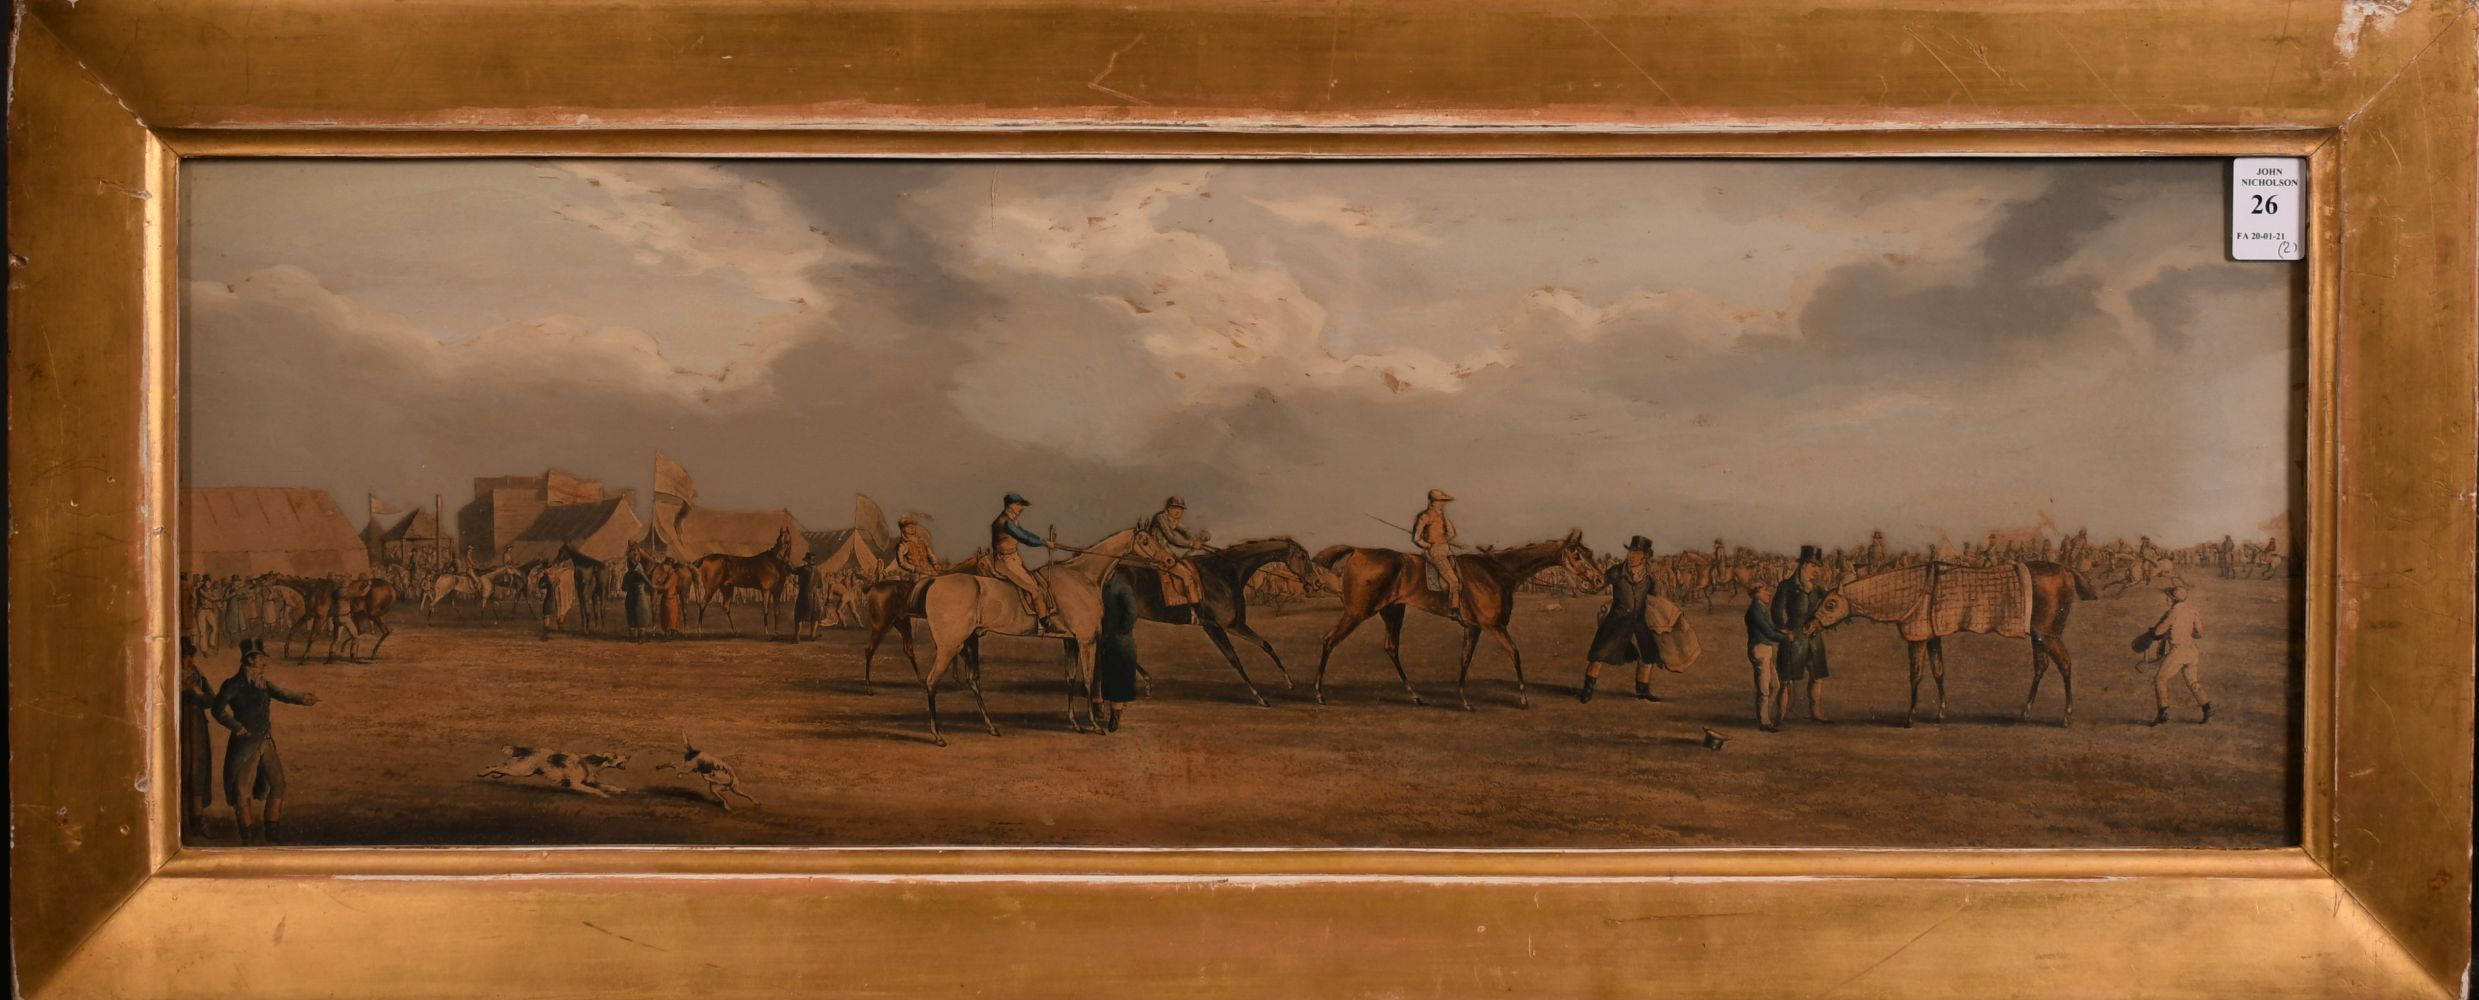 """A pair of 19th century coloured prints of horse meetings, each 8.5"""" x 26"""". - Image 2 of 4"""